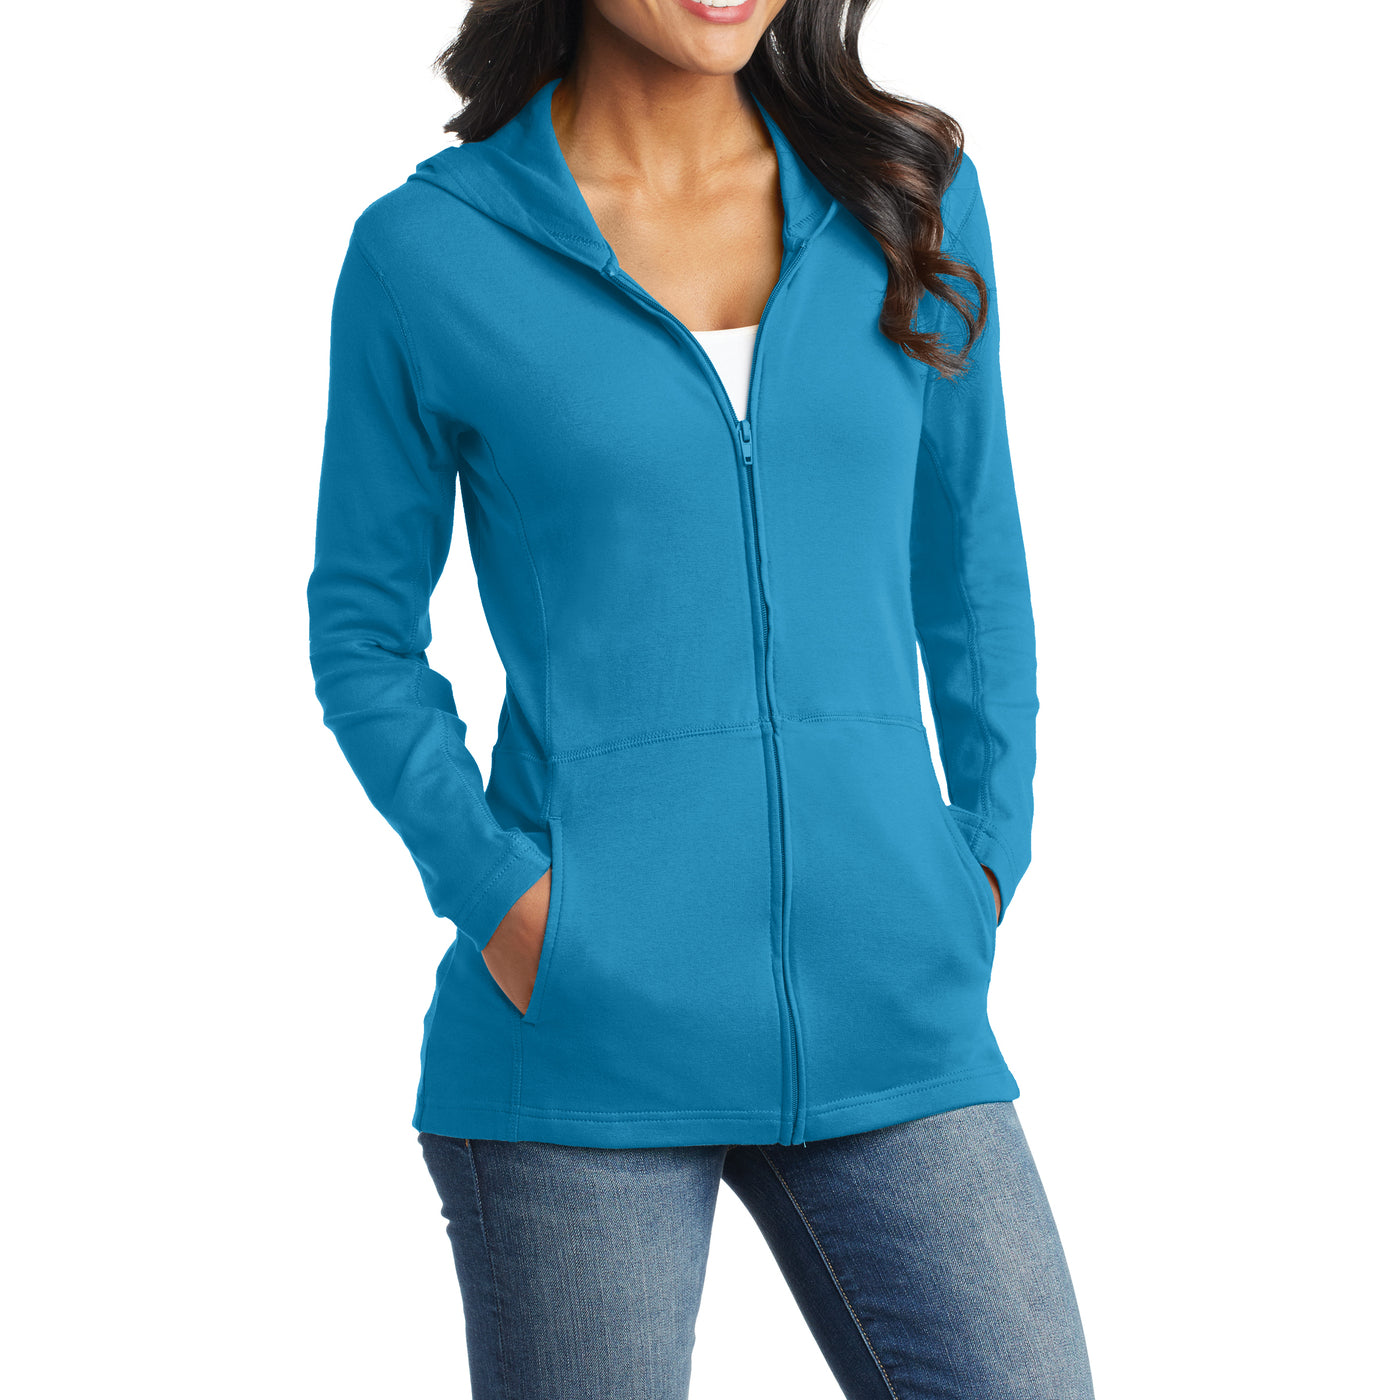 Women's Modern Stretch Cotton Full-Zip Jacket - Mosaic Blue - Side